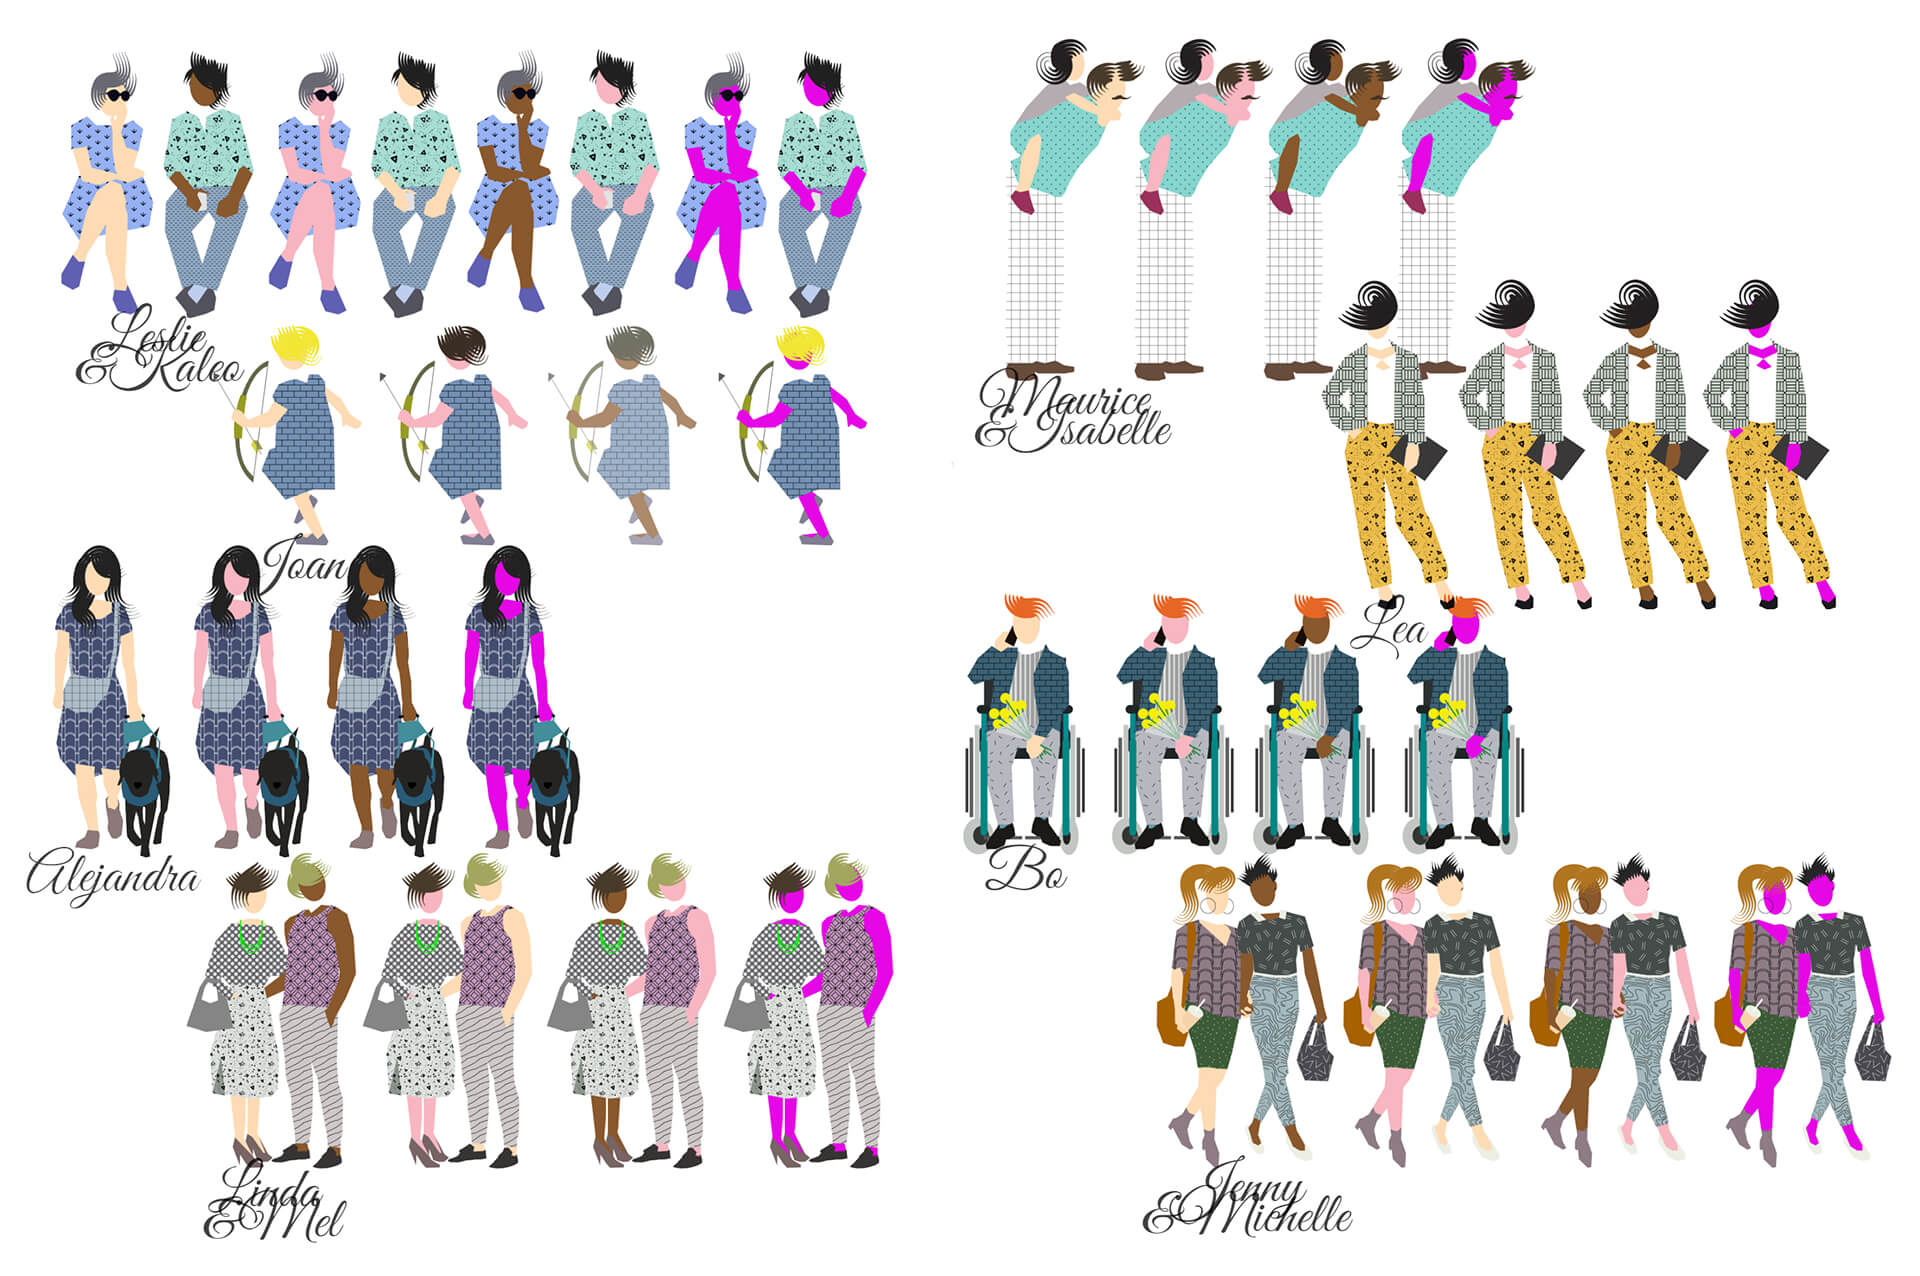 Architectural scale figures that show people of different genders, colour and abilities | Neutra Cutout Mix| Francesca Perani | STIRworld